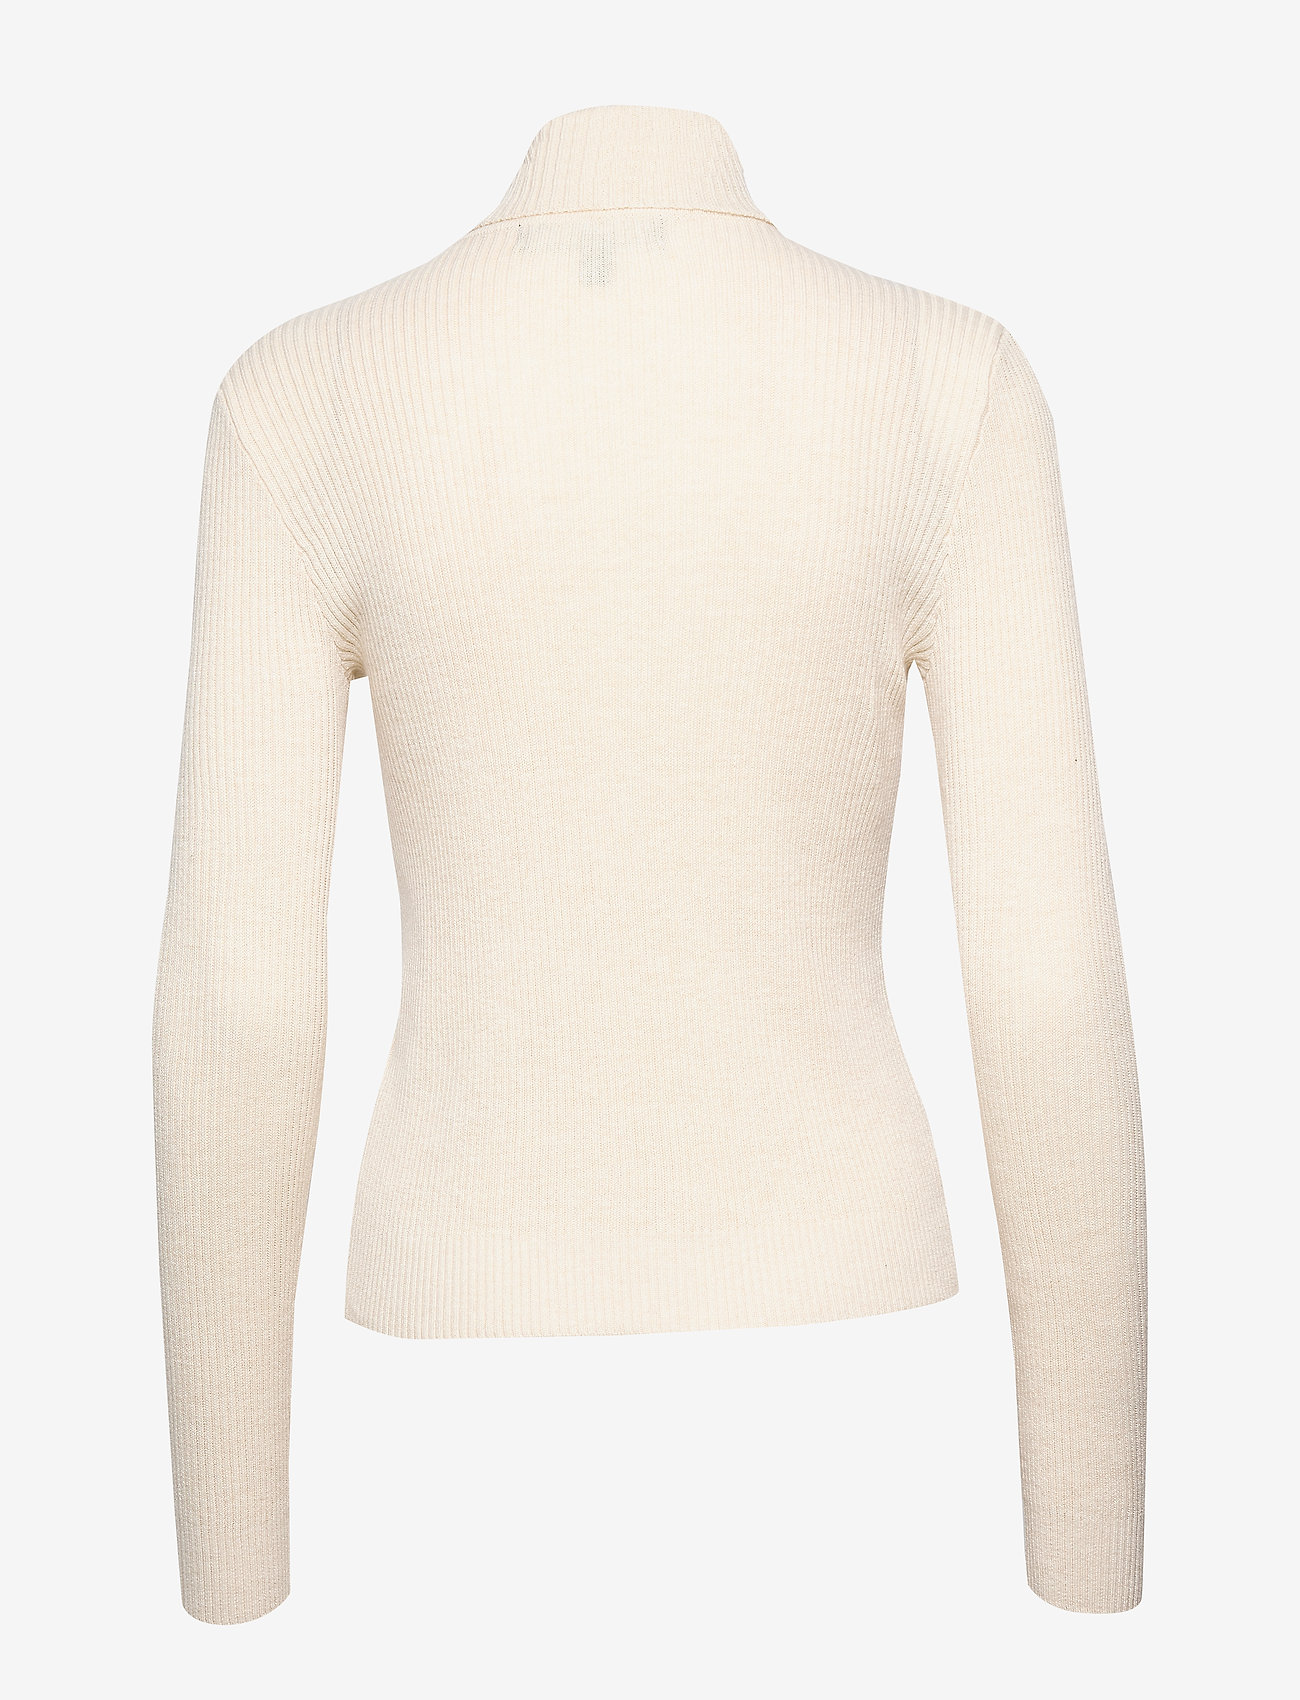 Vero Moda - VMCUTIE LS HIGHNECK BLOUSE - turtlenecks - birch - 1